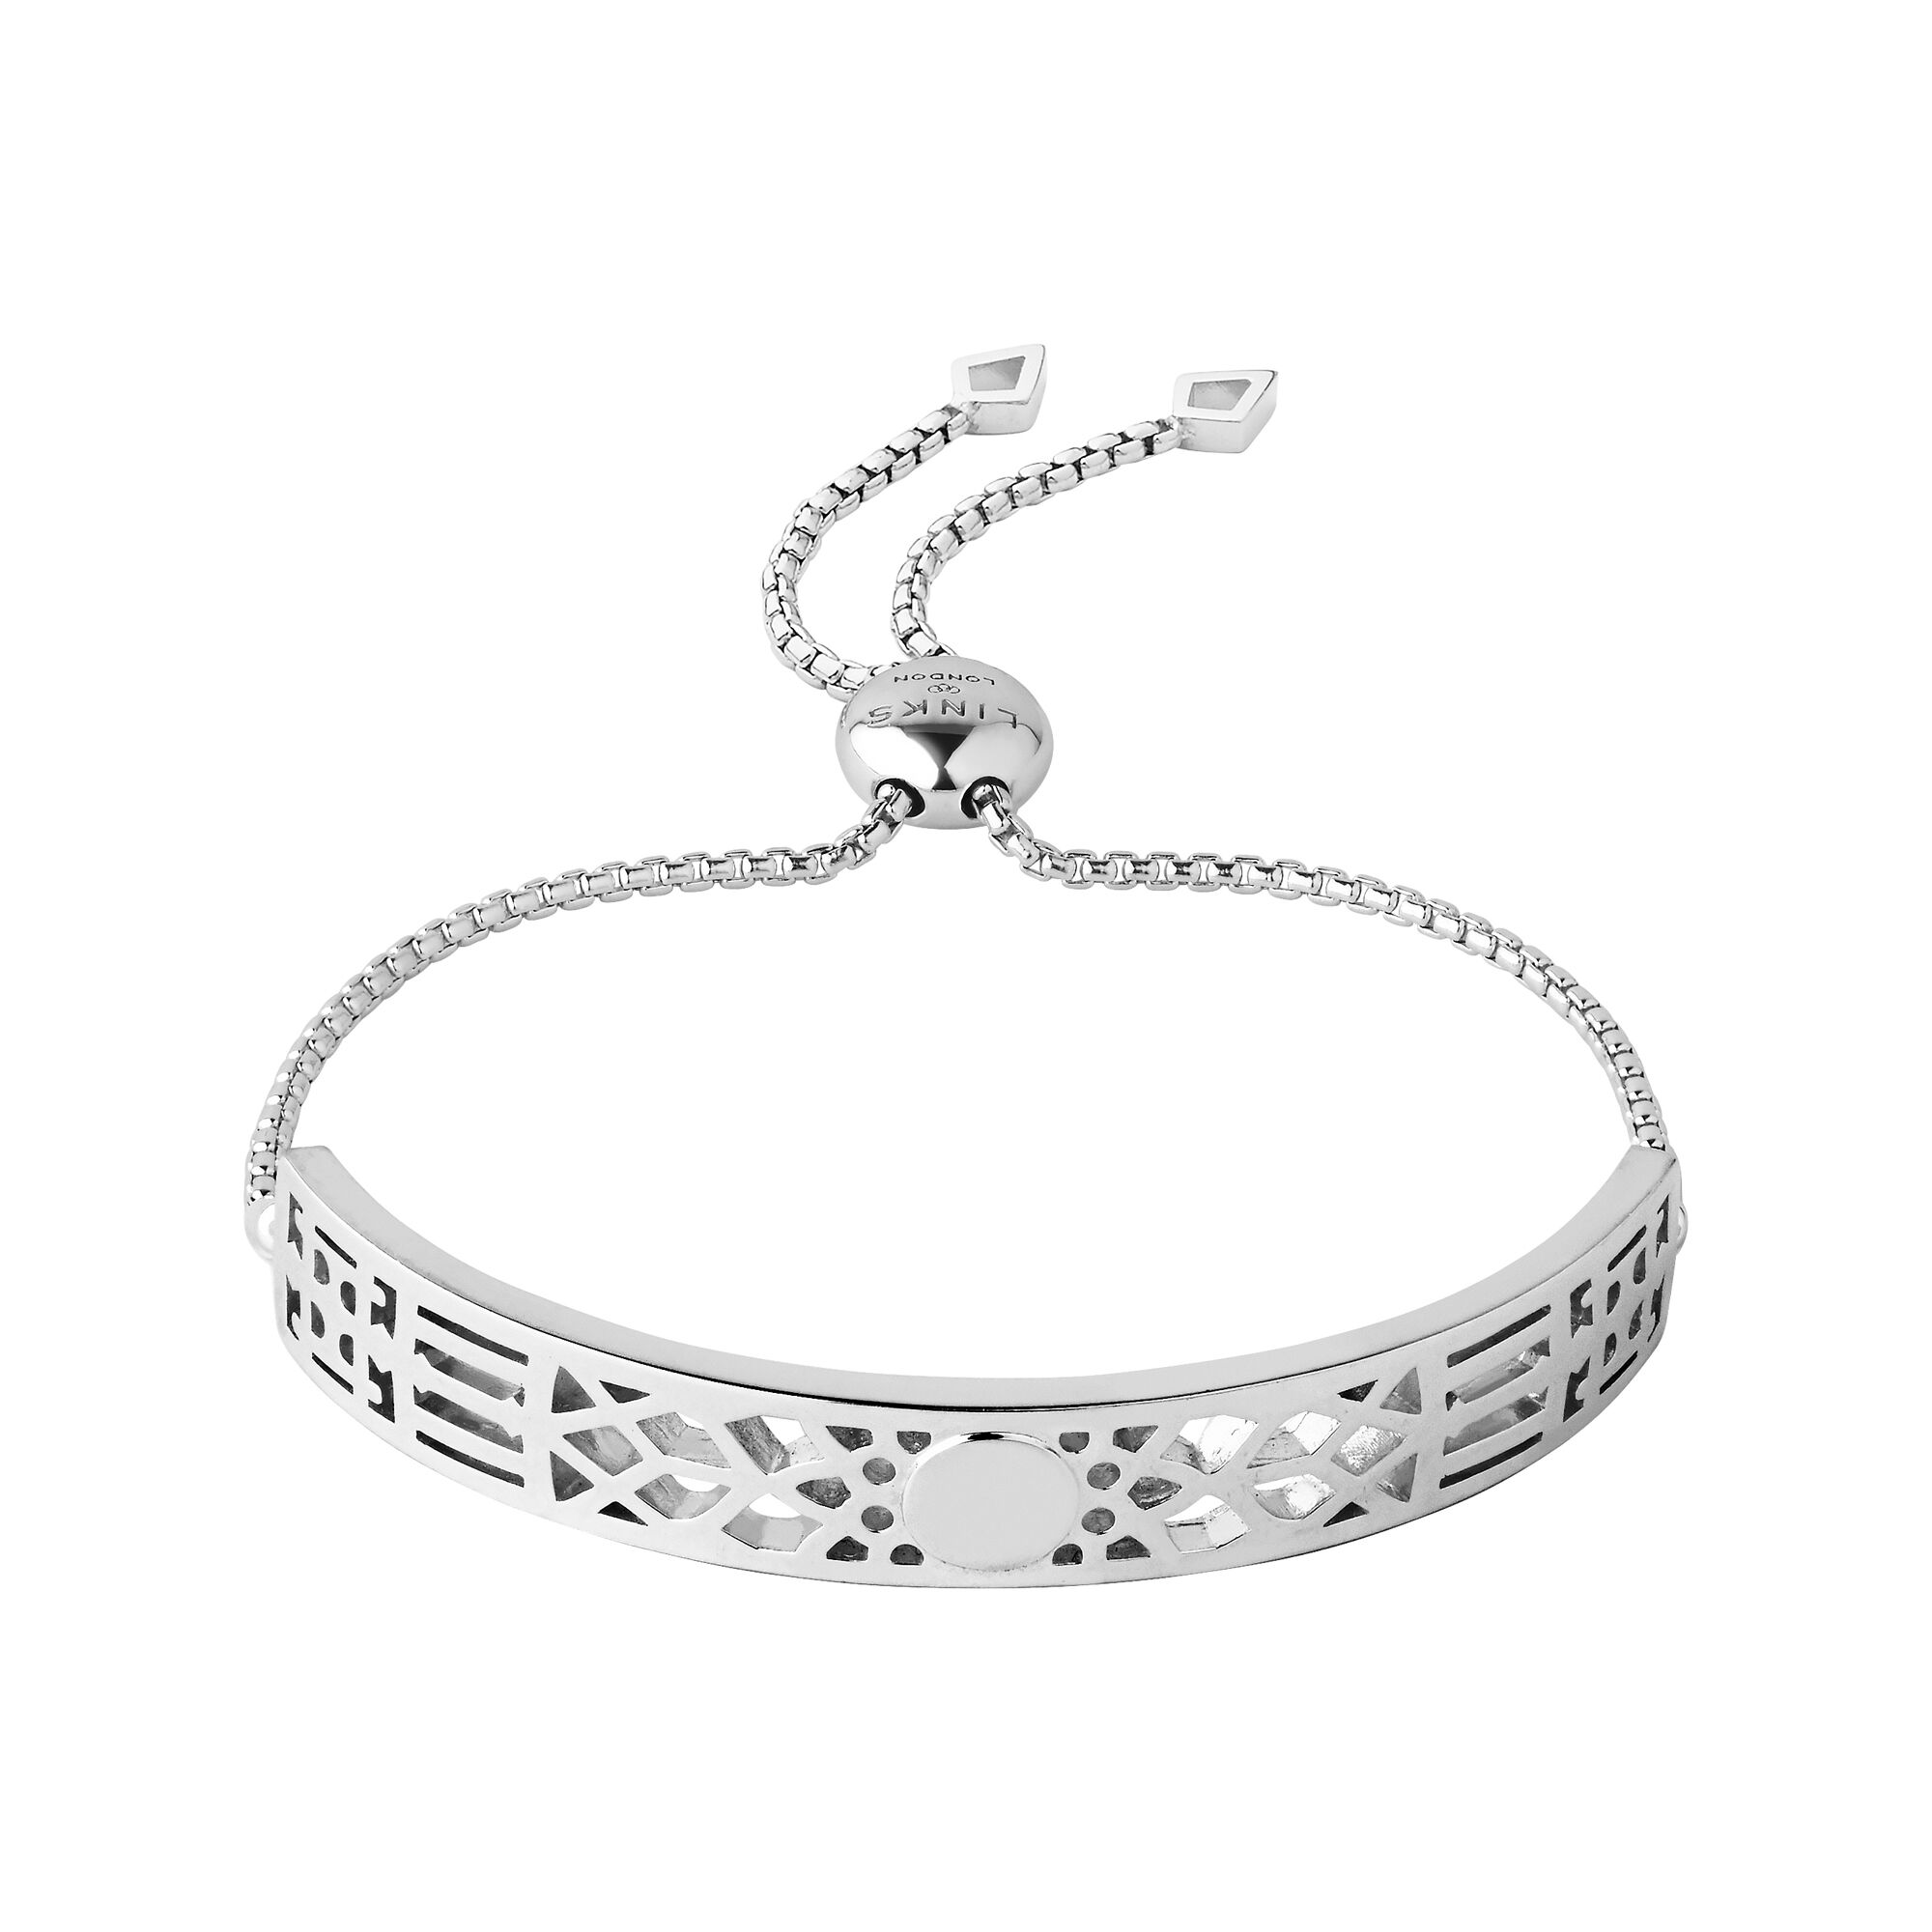 jewelry cl bracelet bling star solid sterling silver patriotic stars chain cutout toggle